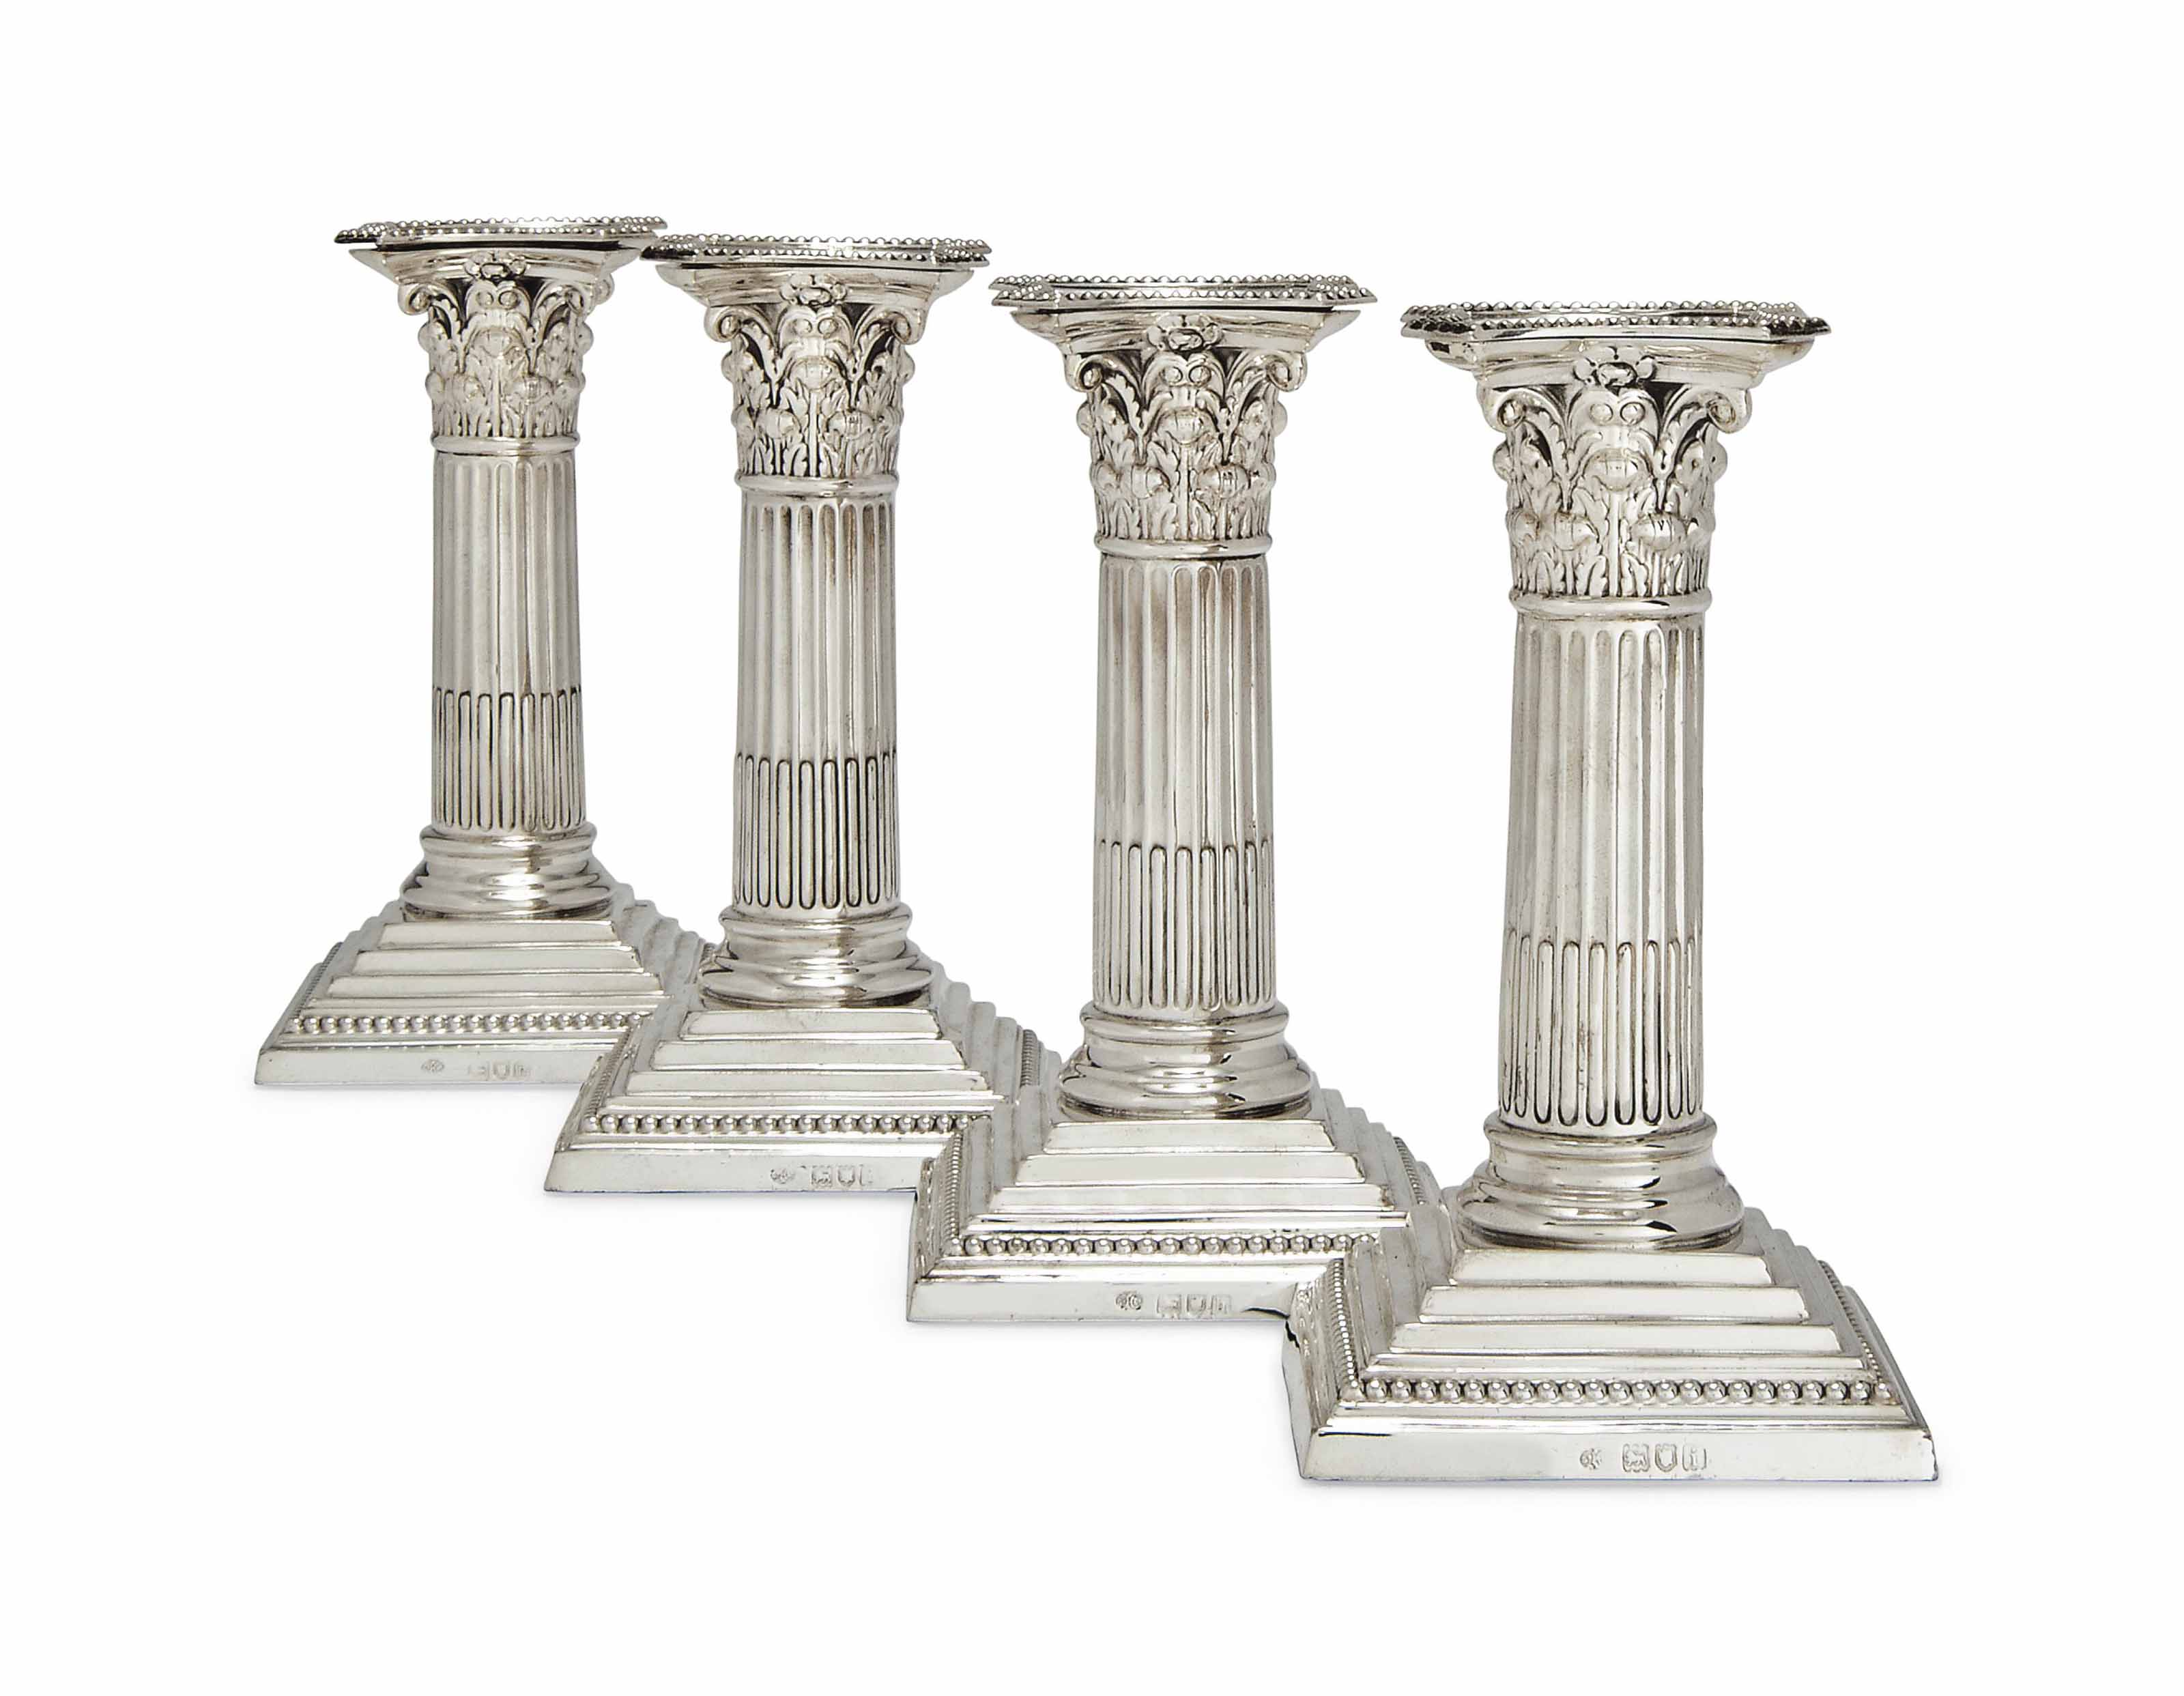 A MATCHED SET OF FOUR EDWARDIAN SILVER DWARF CORINTHIAN COLUMN CANDLESTICKS